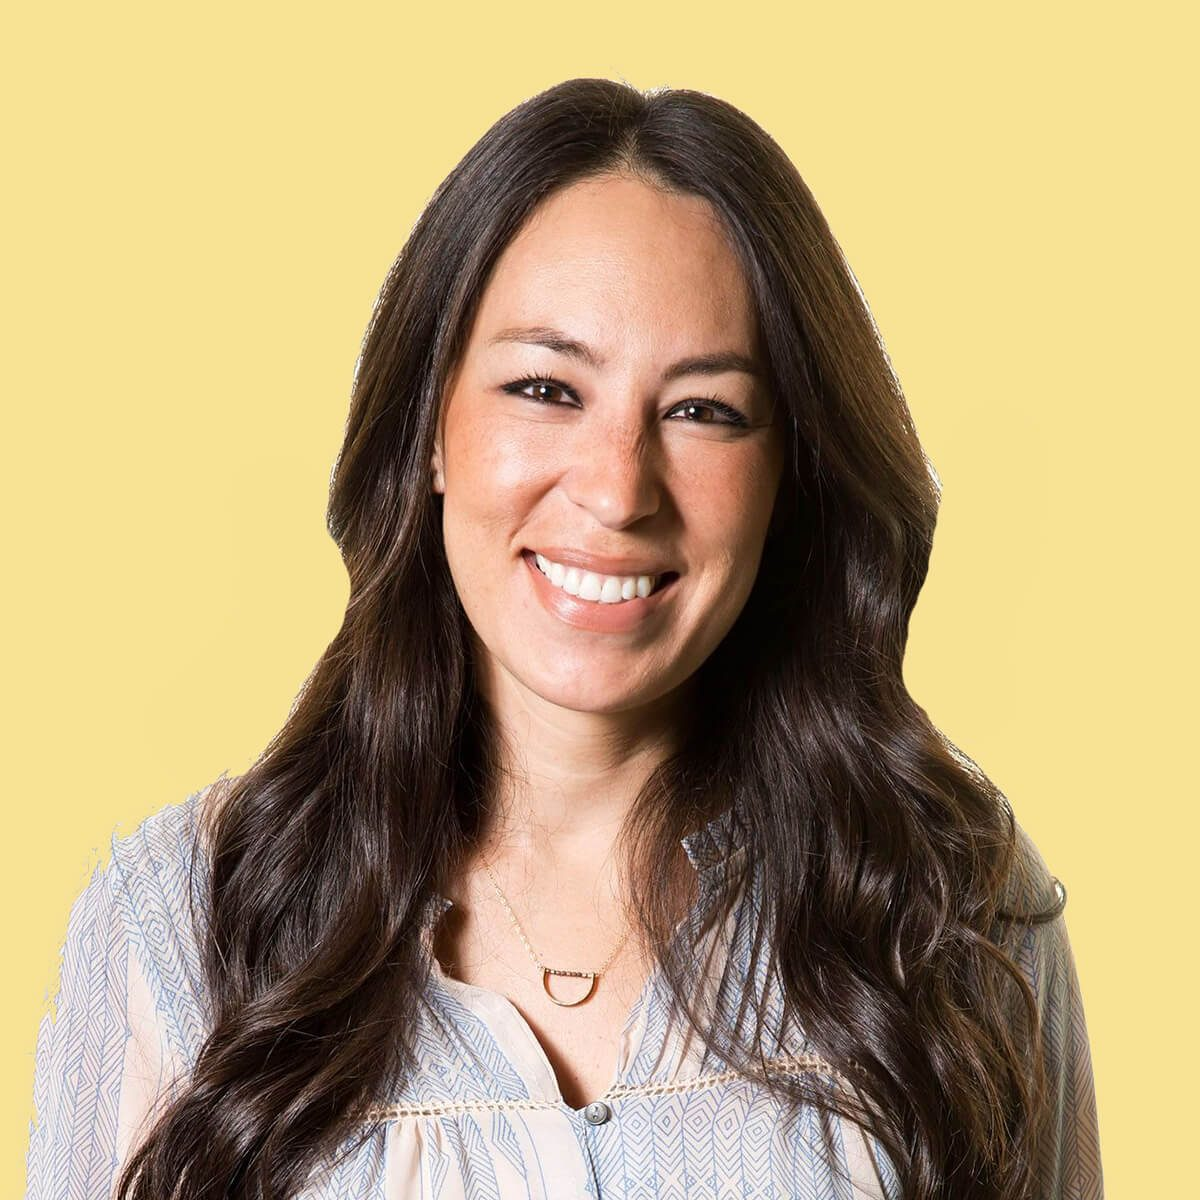 Joanna Gaines poses for a portrait